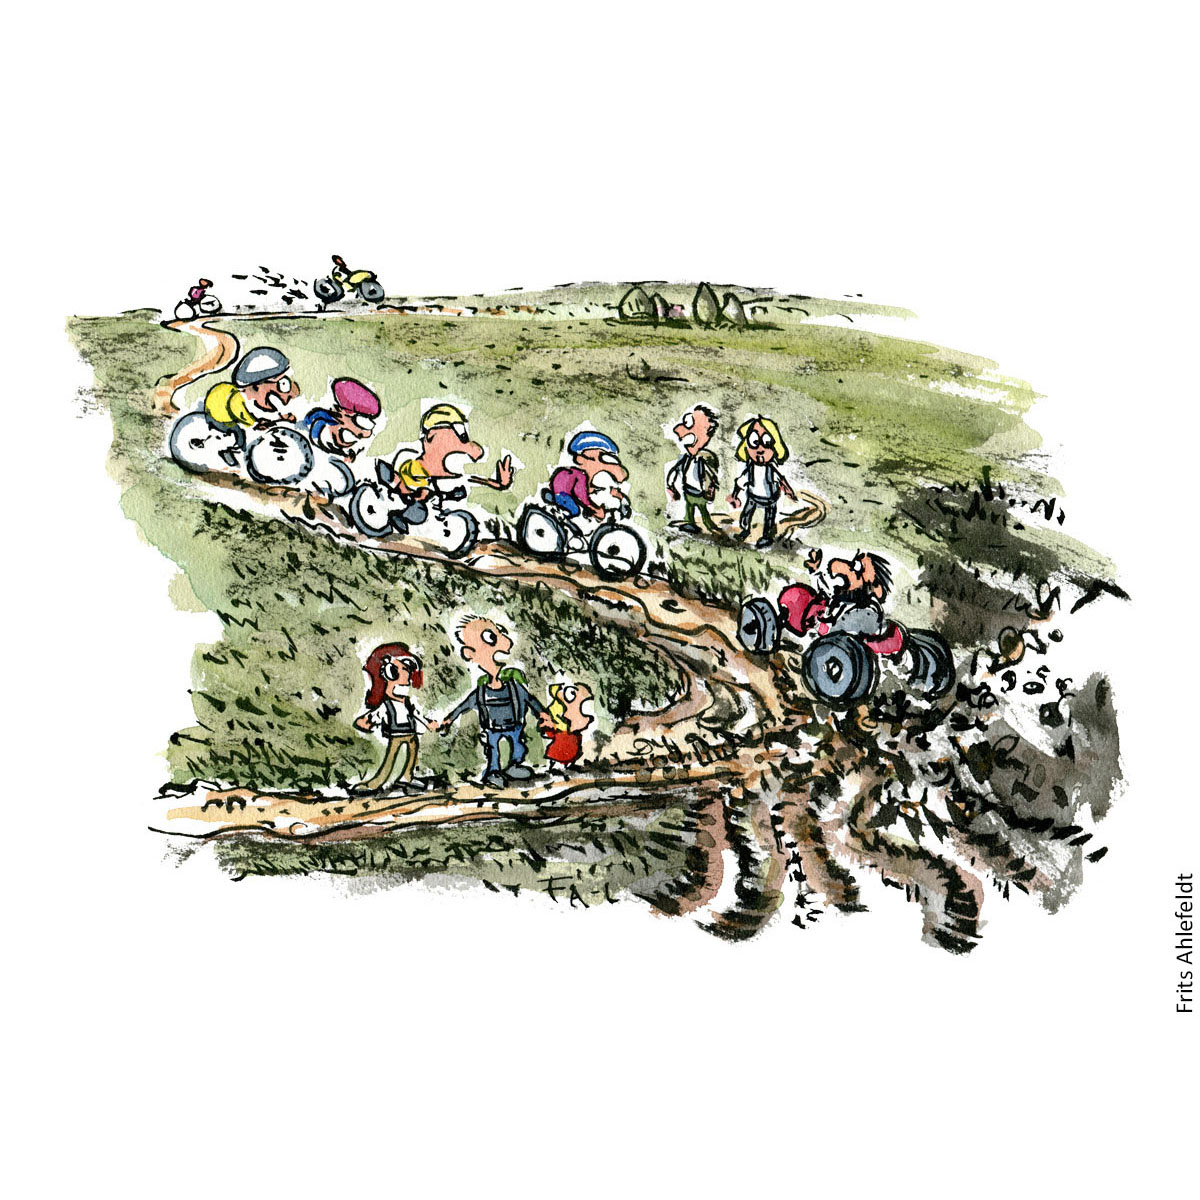 Drawing of hikers and mountainbikes and all-wheel vehicles on the same trail. Traildesign hiking Illustration by Frits Ahlefeldt